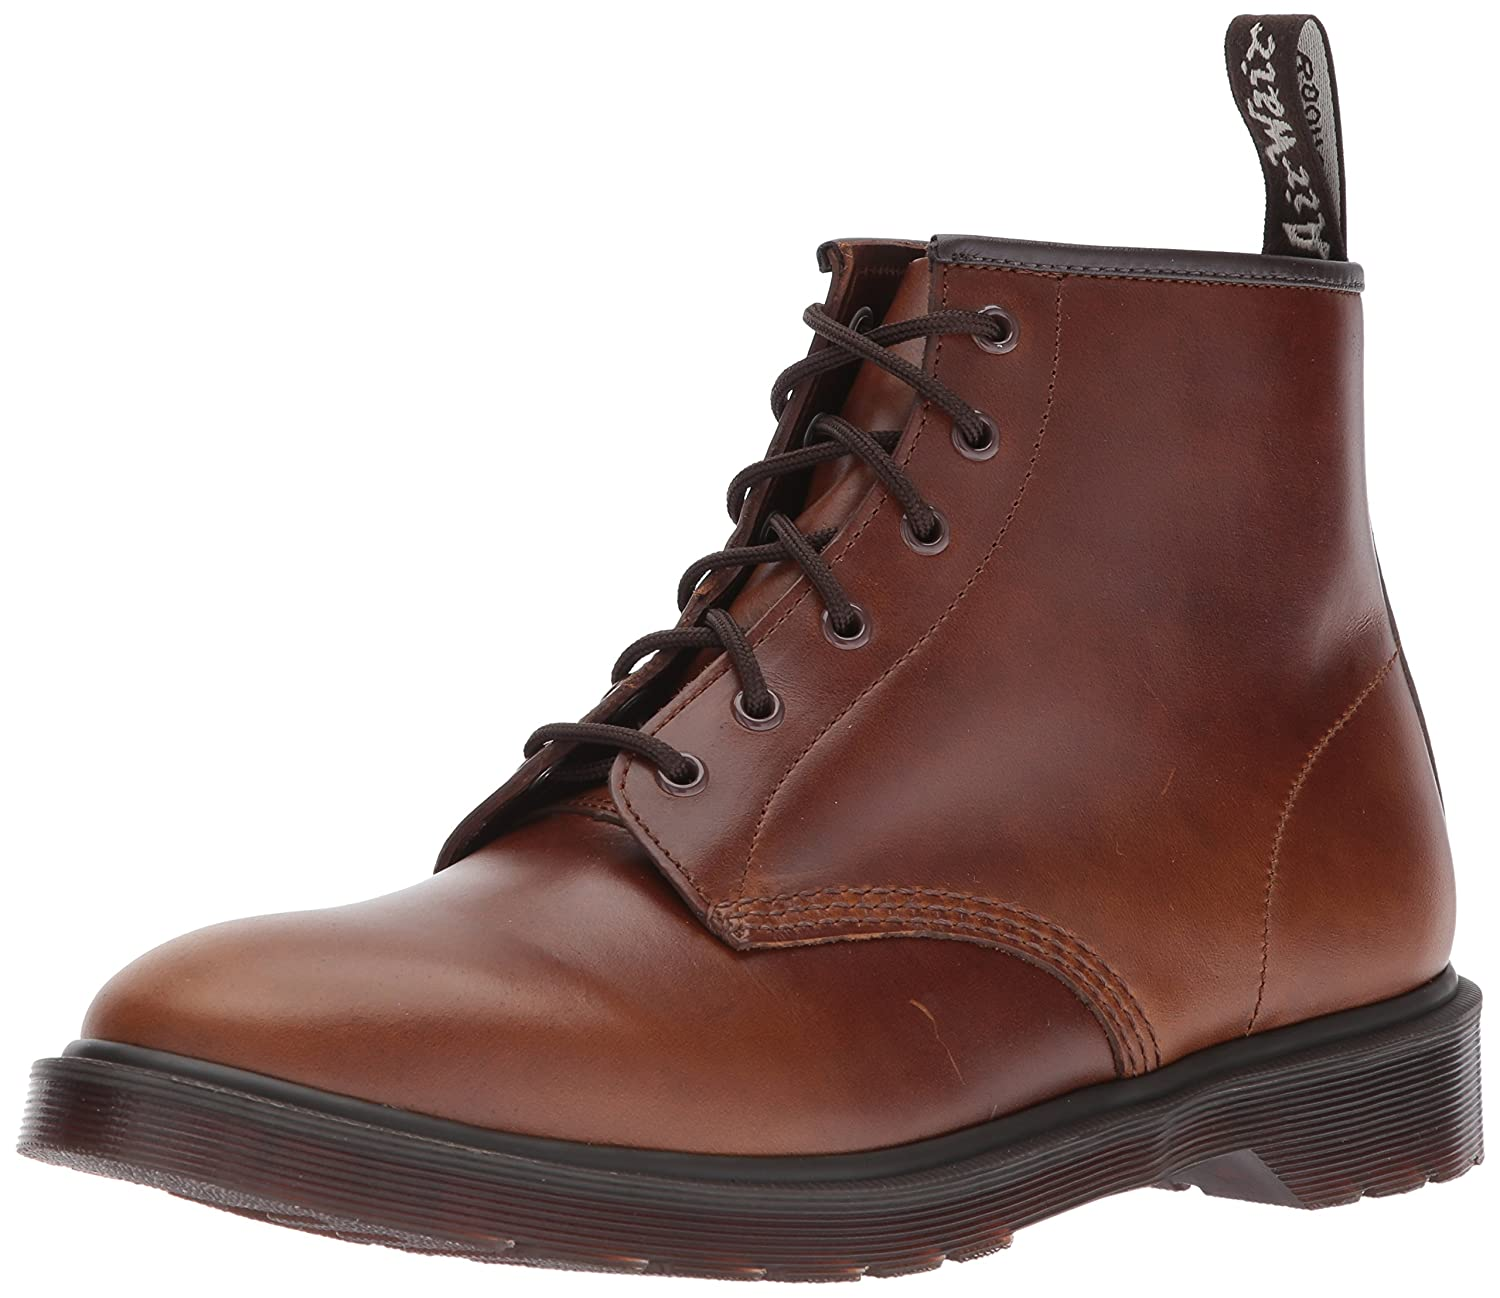 Dr. Martens 101 BR Fashion Boot B01MY2UD1Z 9 Medium UK (10 US)|Smokethorn Brando